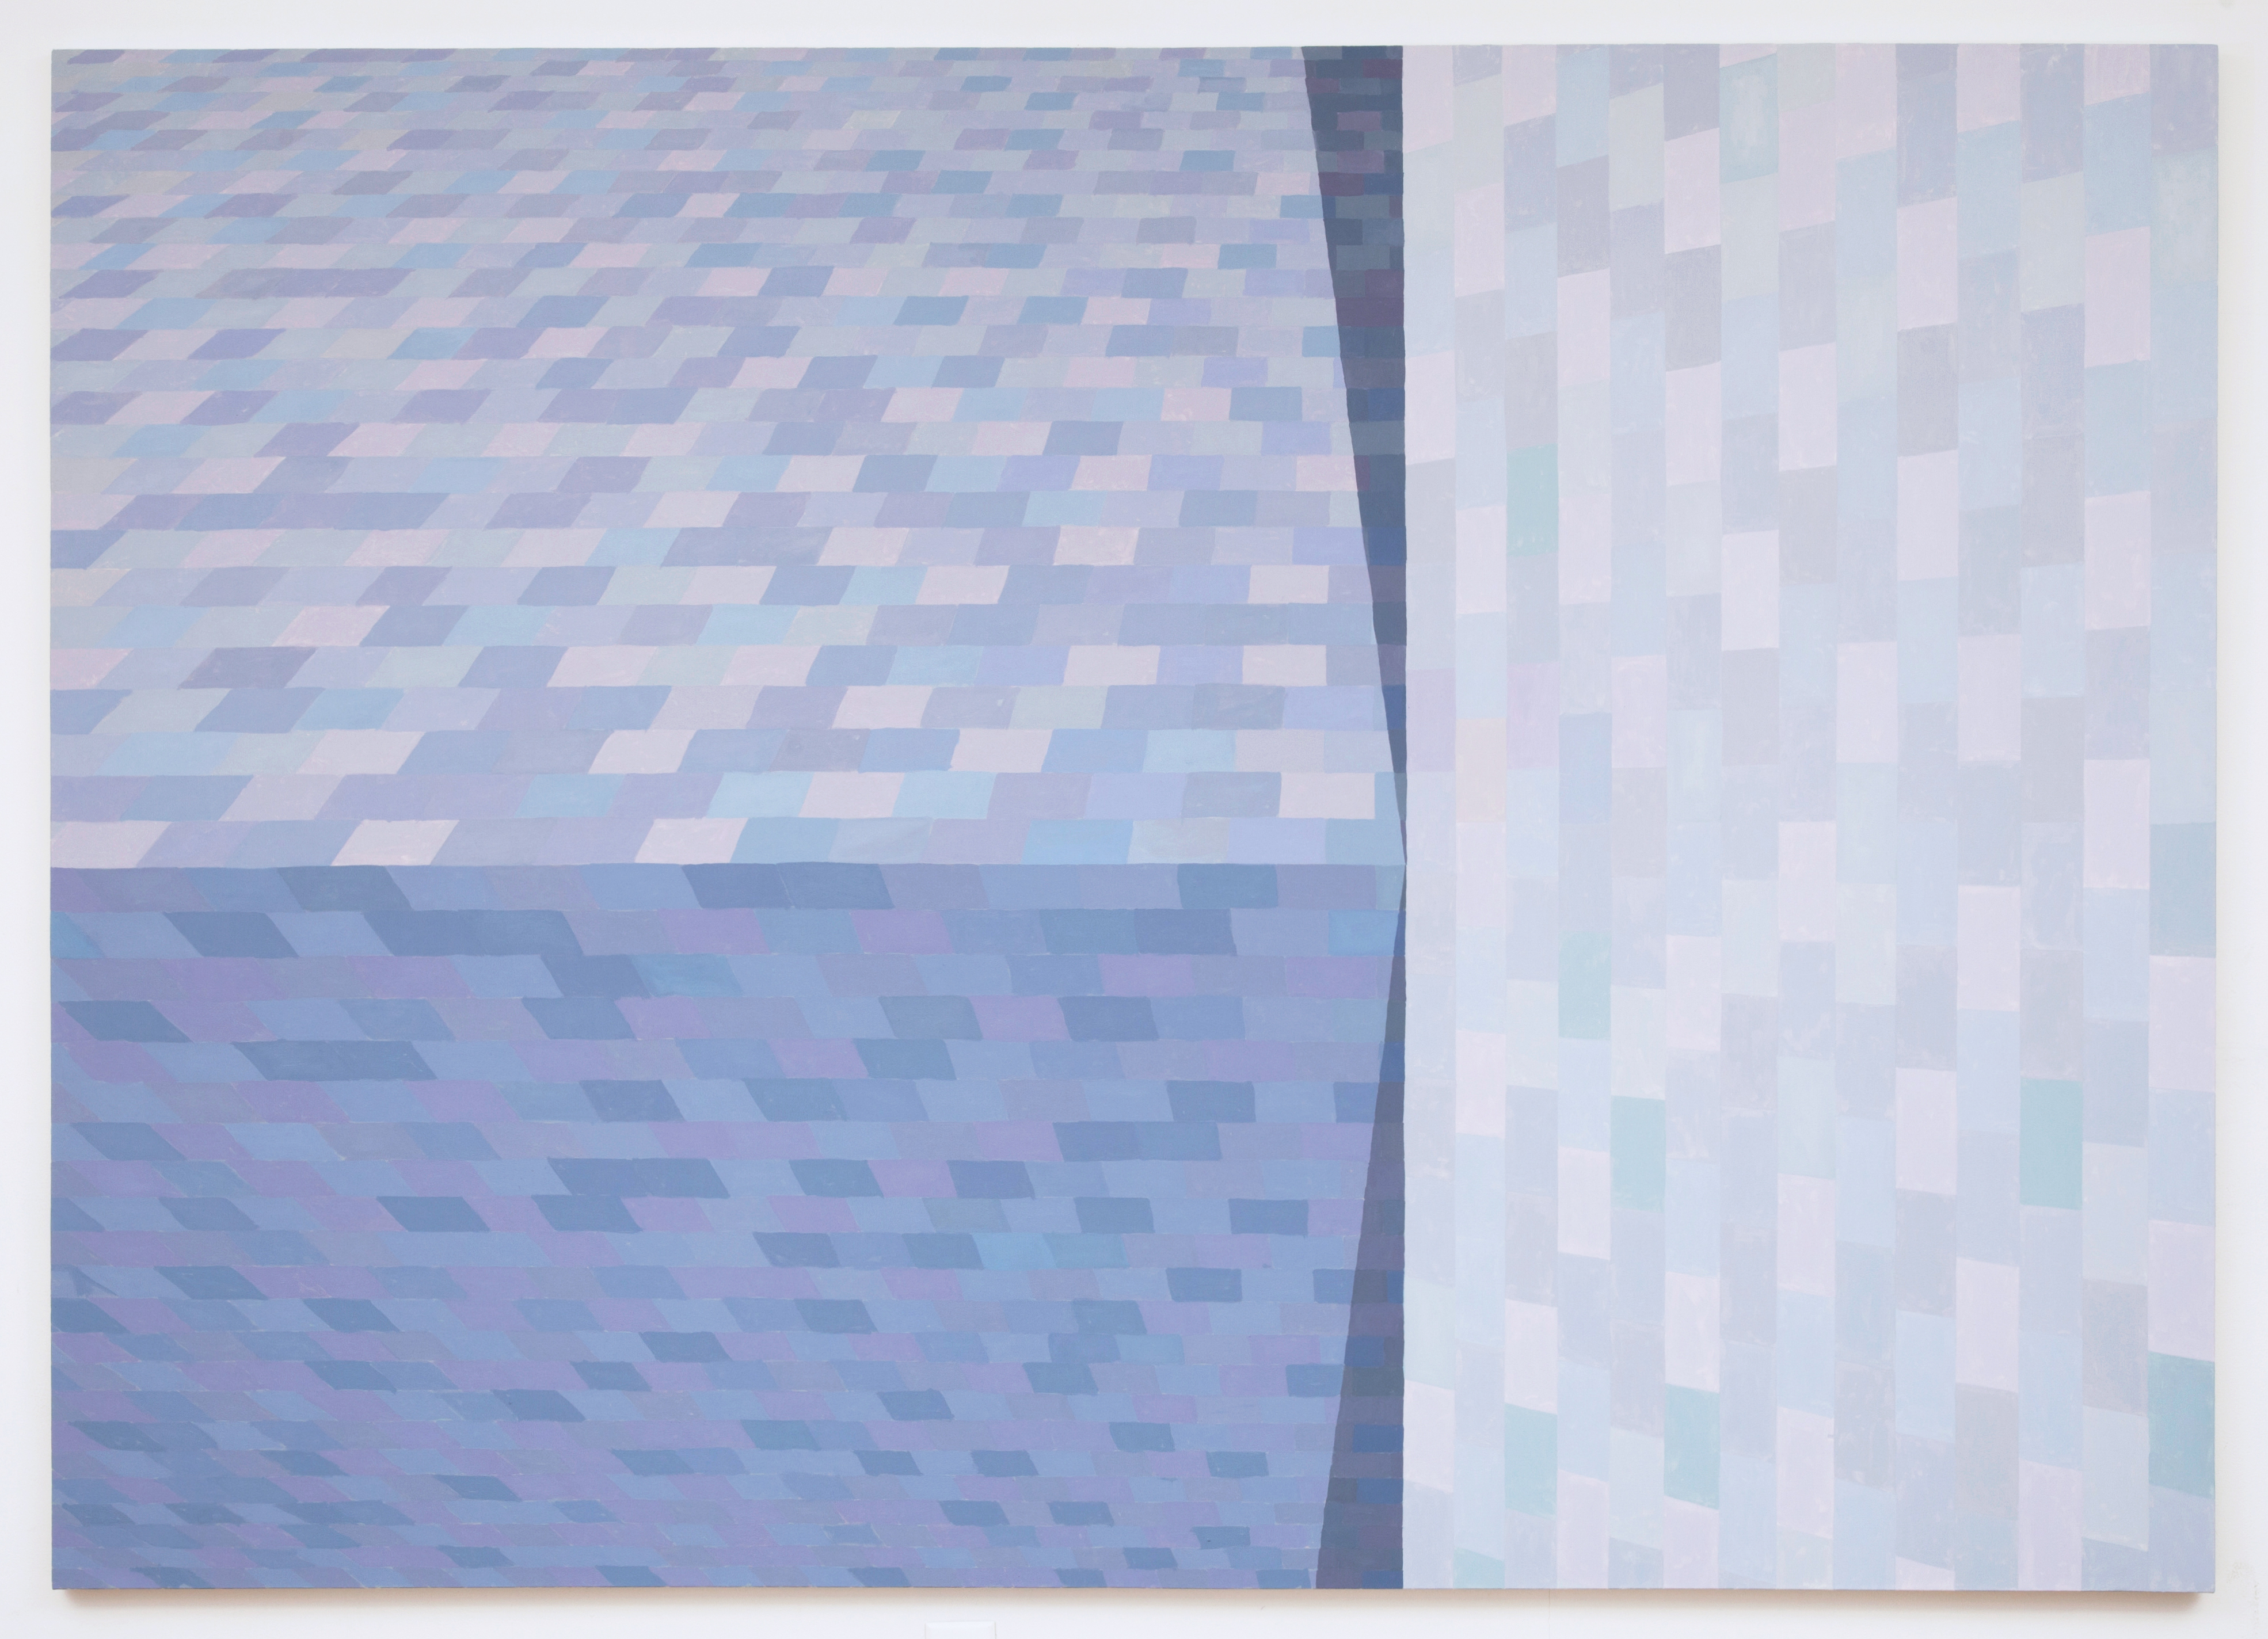 Corydon Cowansage, Roof 16, 2013, oil on canvas, 76 x 106 inches